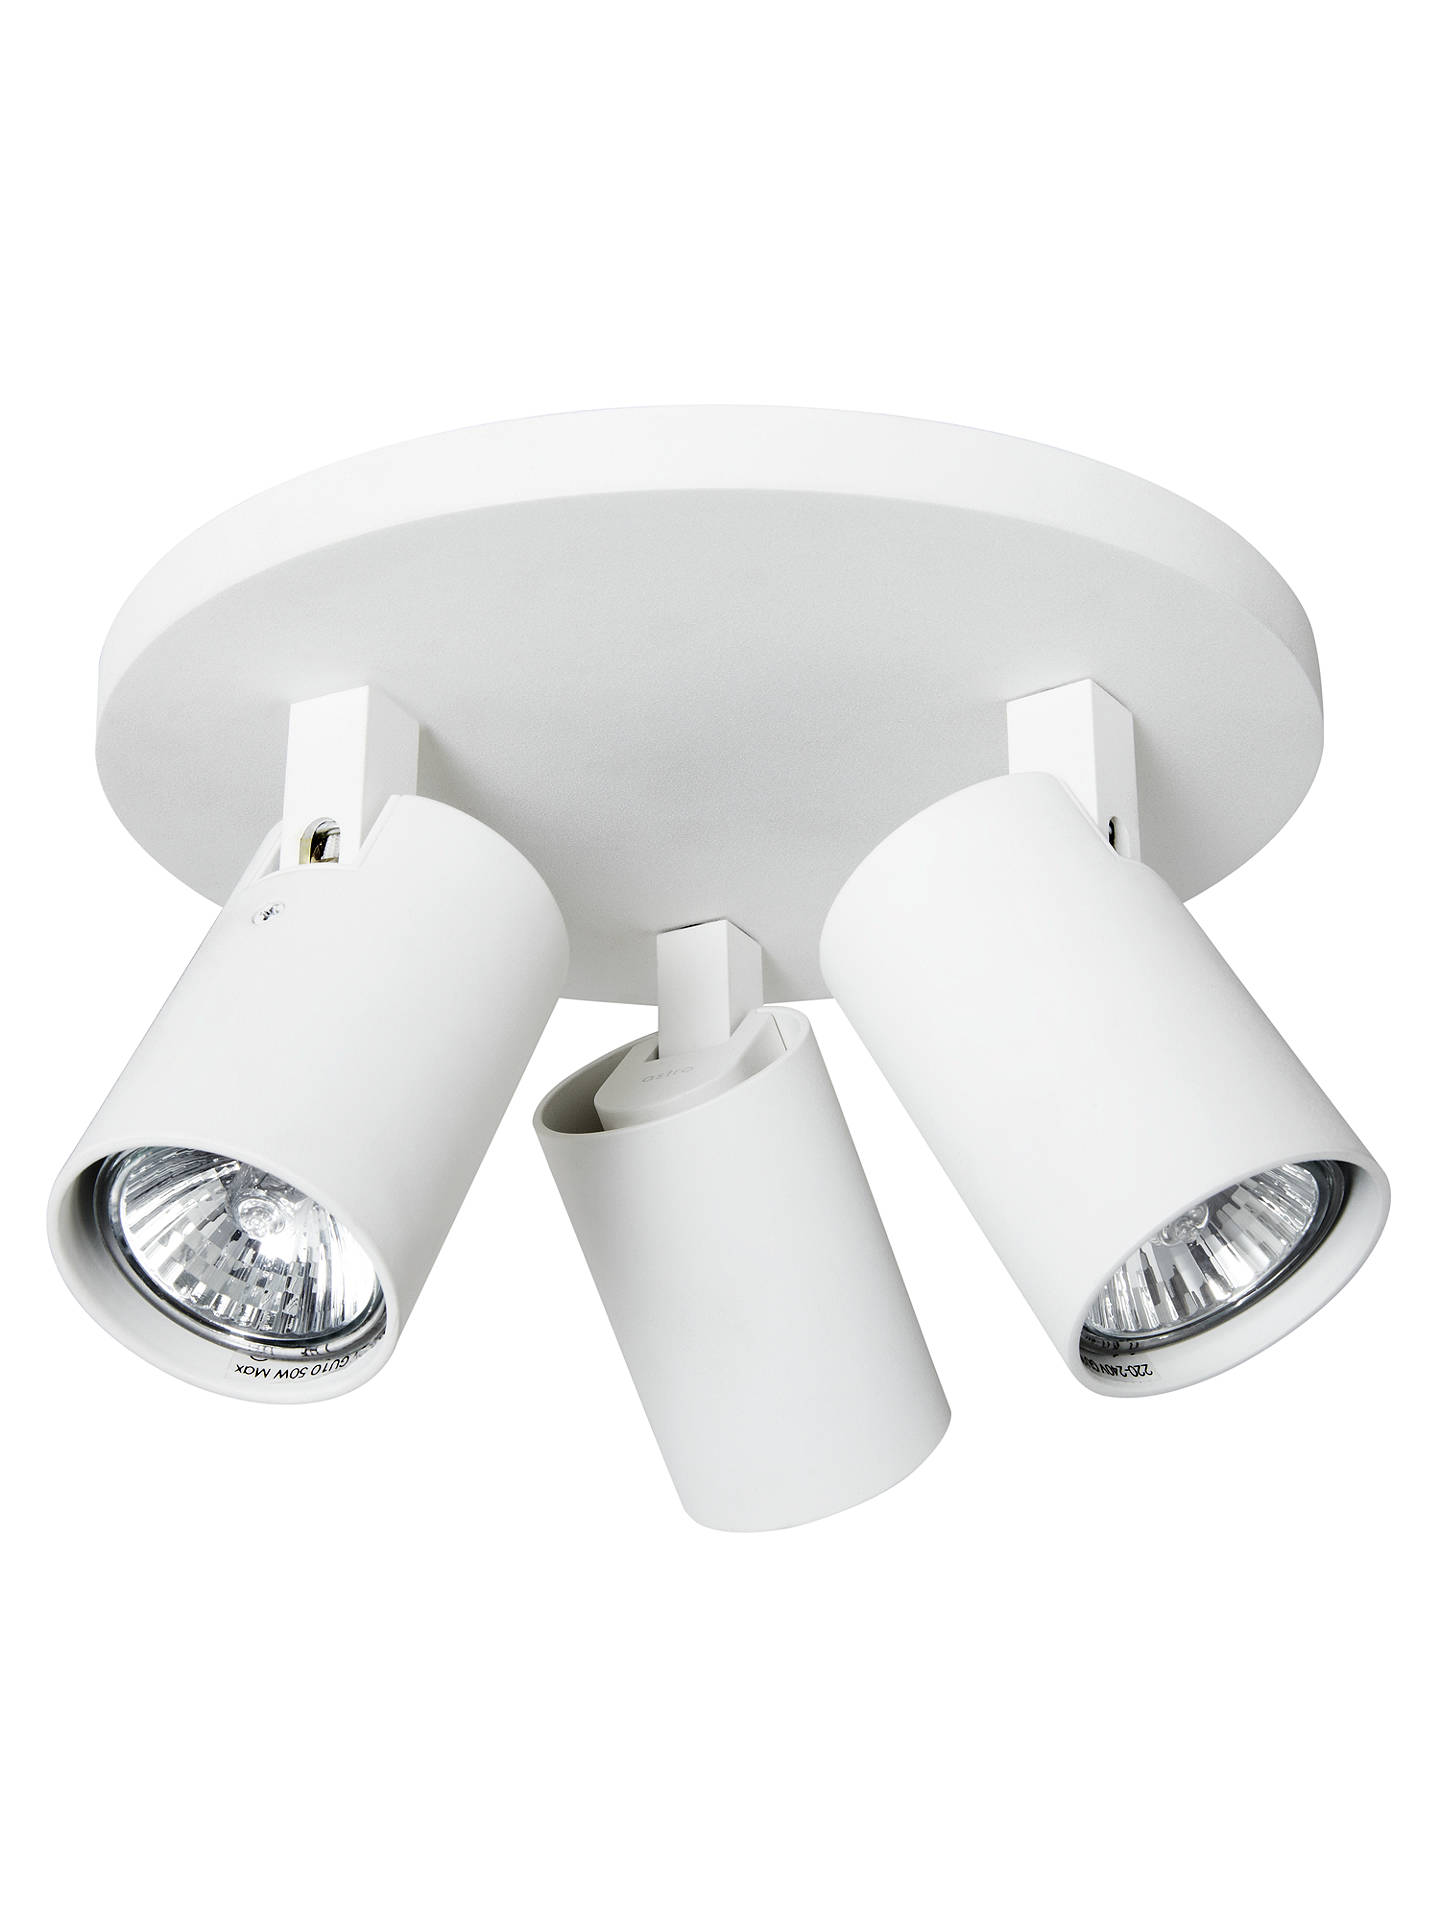 BuyAstro Ascoli 3 Spotlight Ceiling Plate, White Online at johnlewis.com